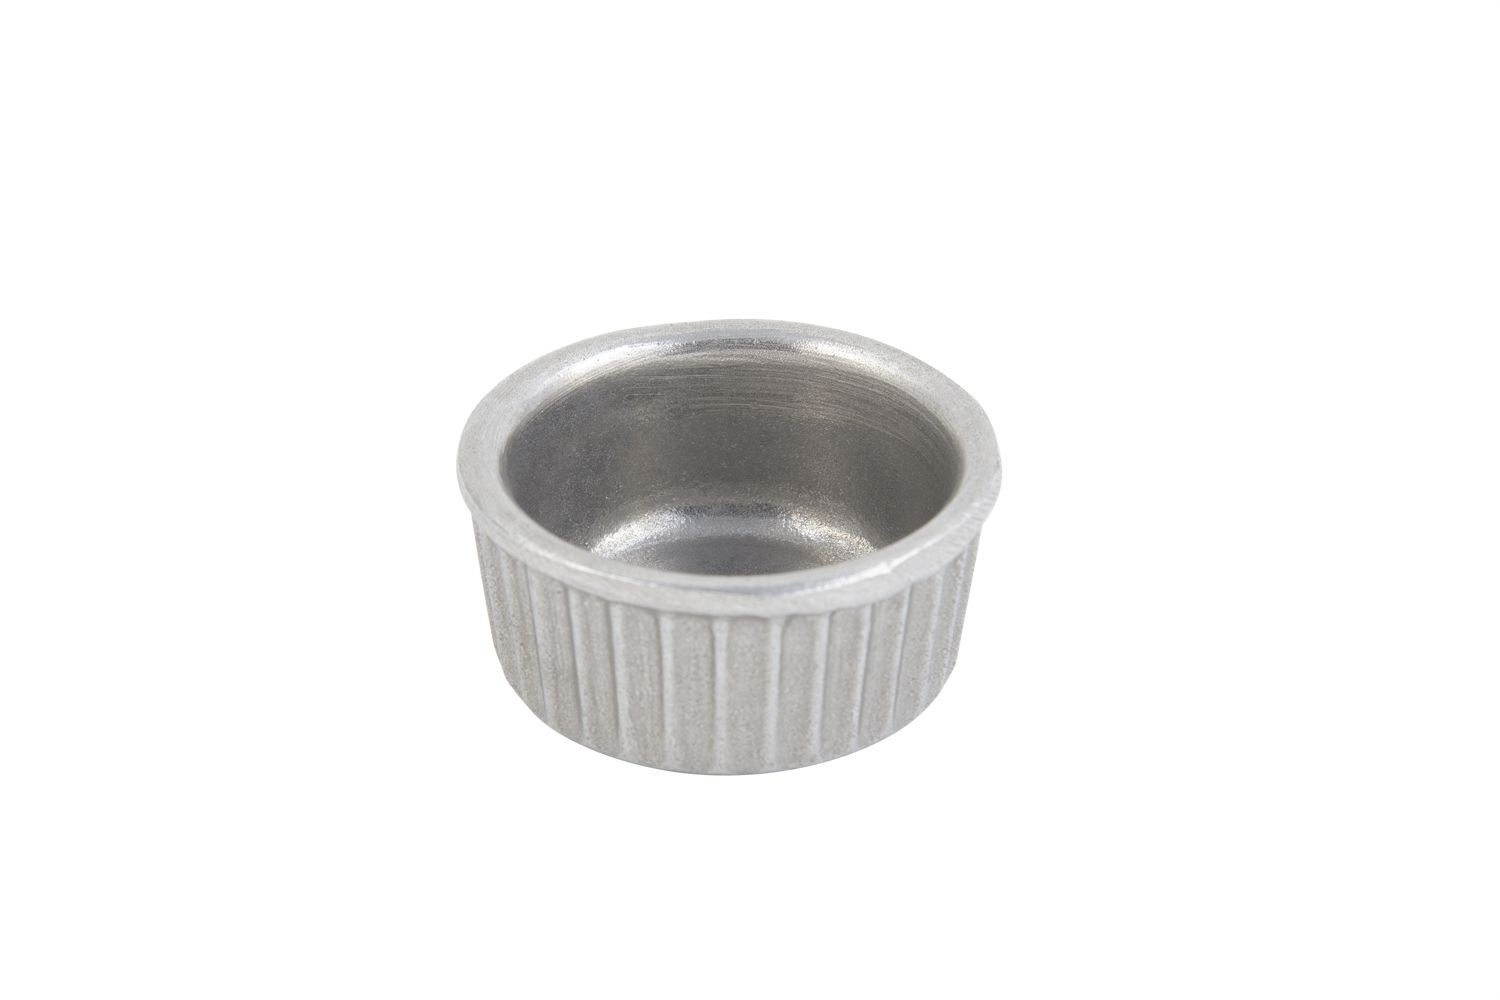 Bon Chef 9024P Fluted Ramekin, Pewter Glo 2 oz., Set of 24